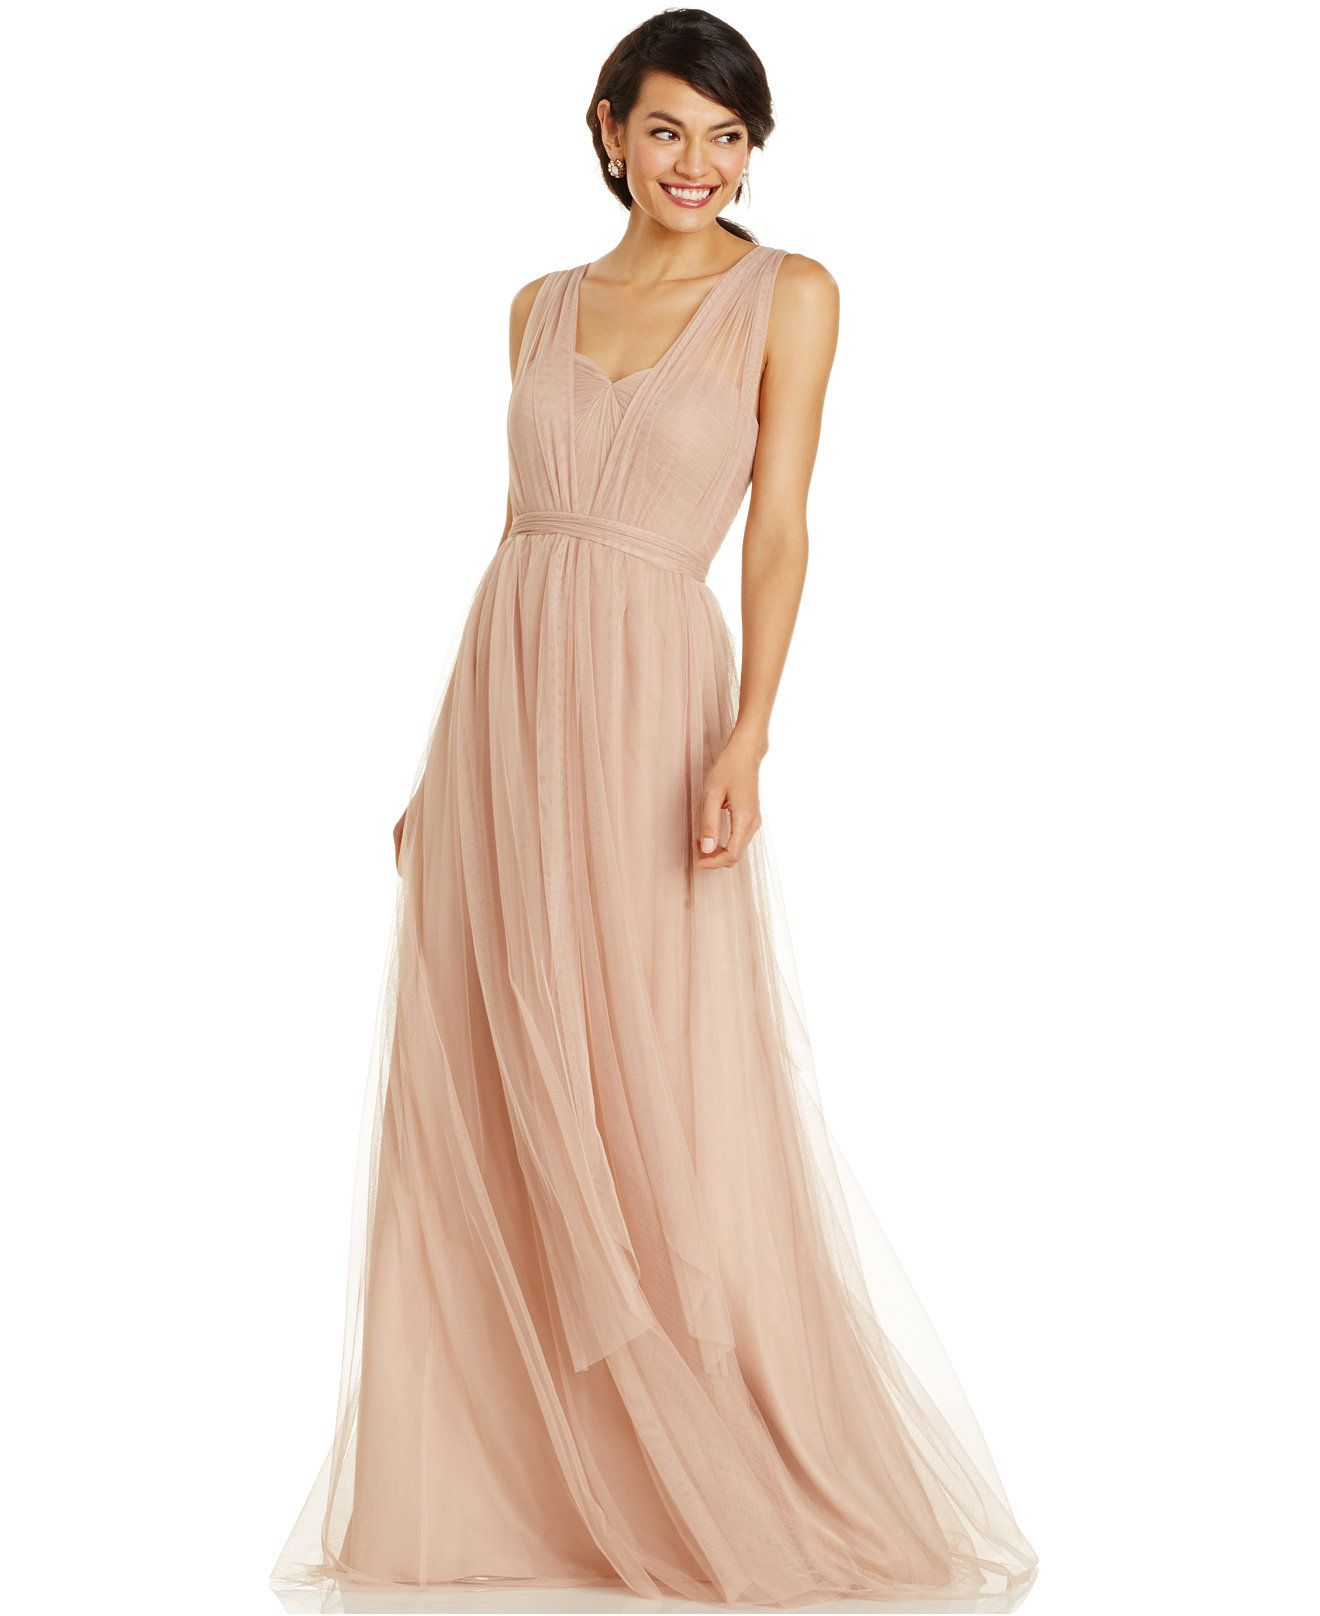 Adrianna papell convertible strapless tulle gown bridesmaids adrianna papell convertible strapless tulle gown bridesmaids women macys ombrellifo Gallery